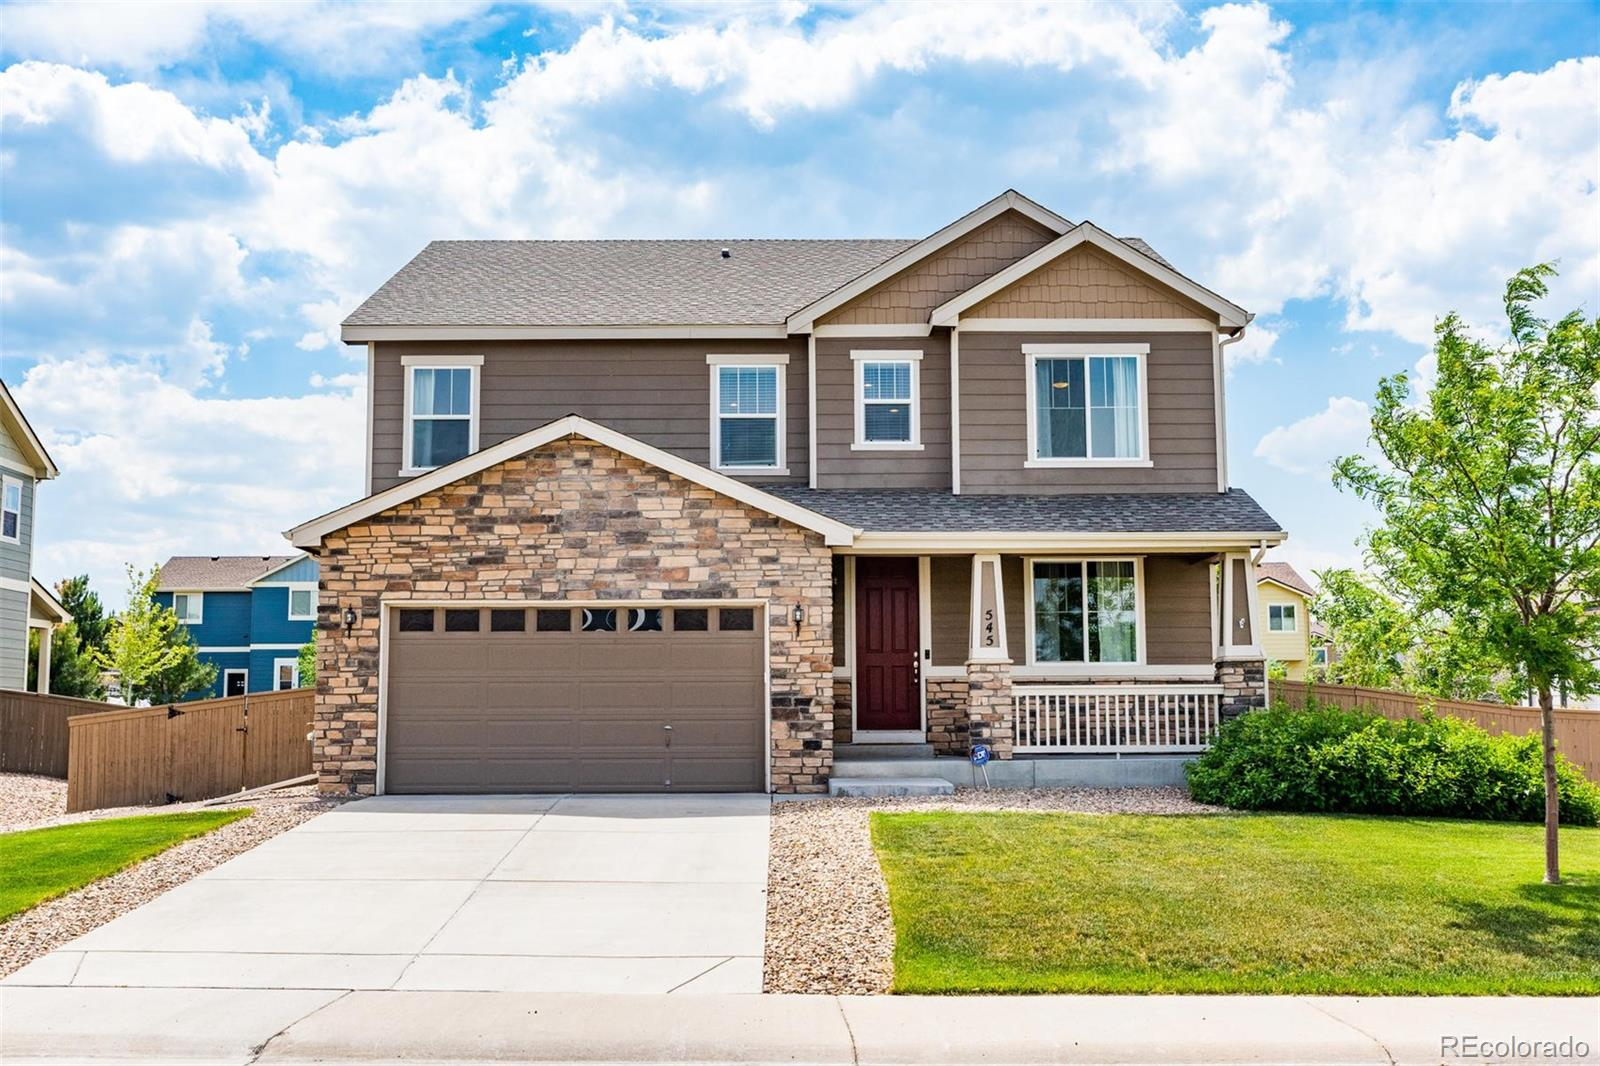 MLS# 1721440 - 1 - 545 Sudbury Street, Castle Rock, CO 80104